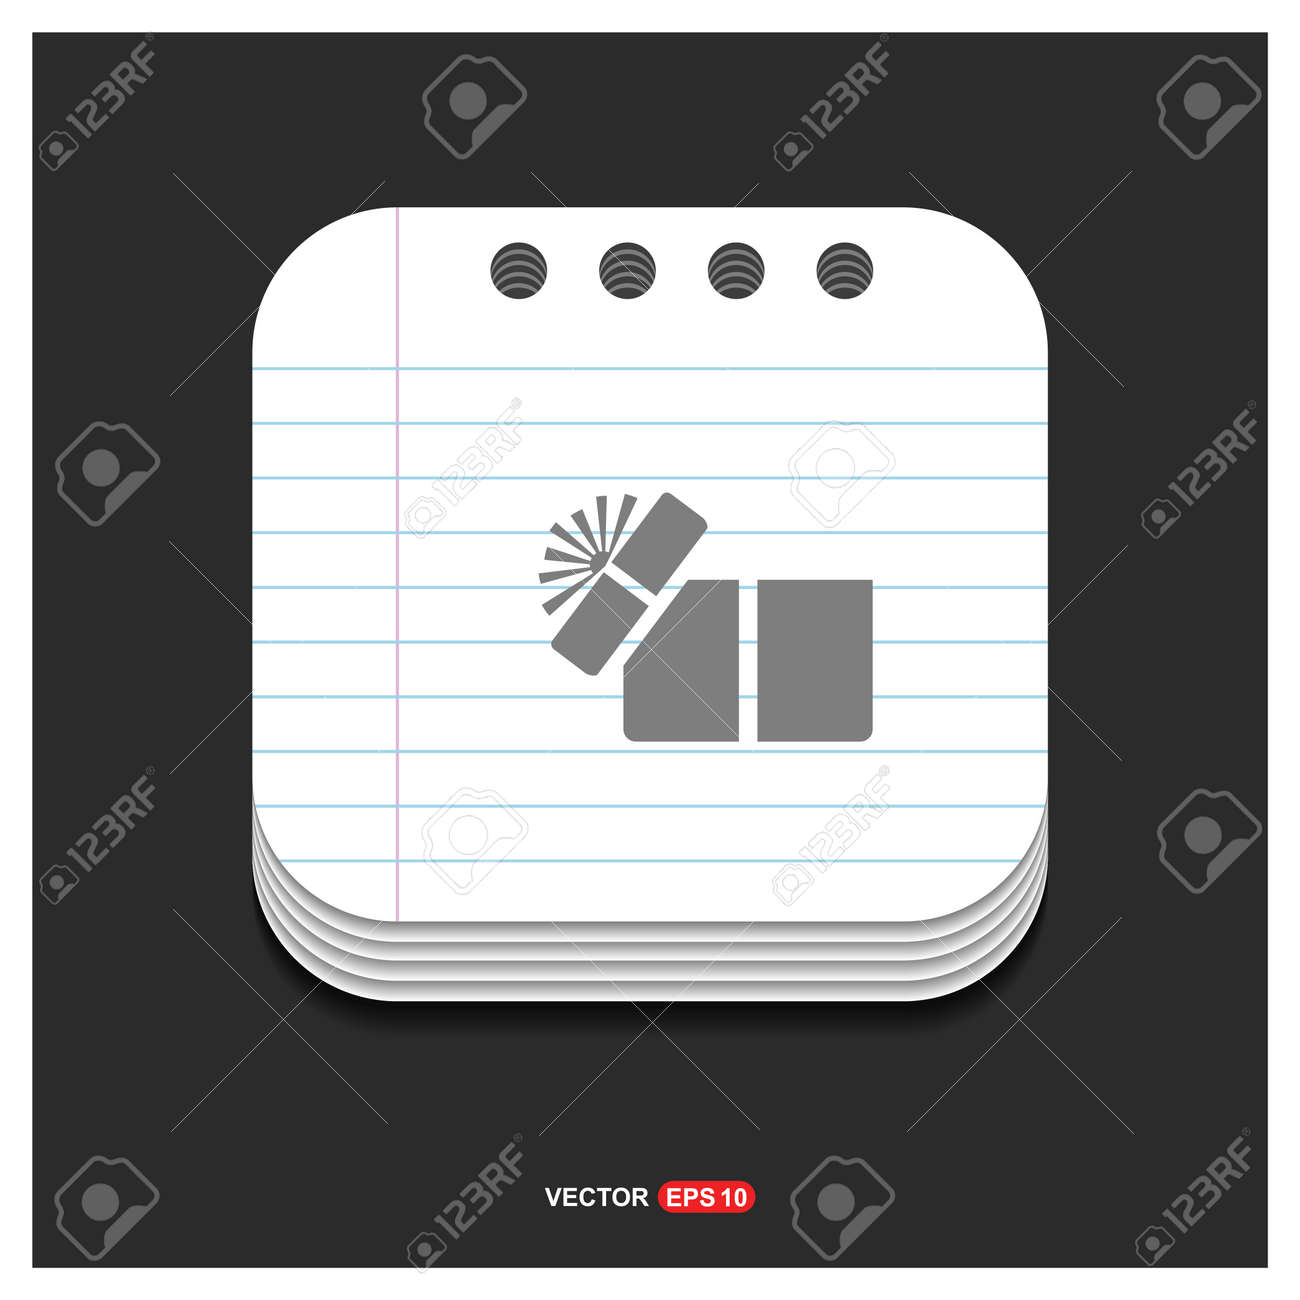 Gift Box Icon Free Vector Icon Royalty Free Cliparts Vectors And Stock Illustration Image 112032096